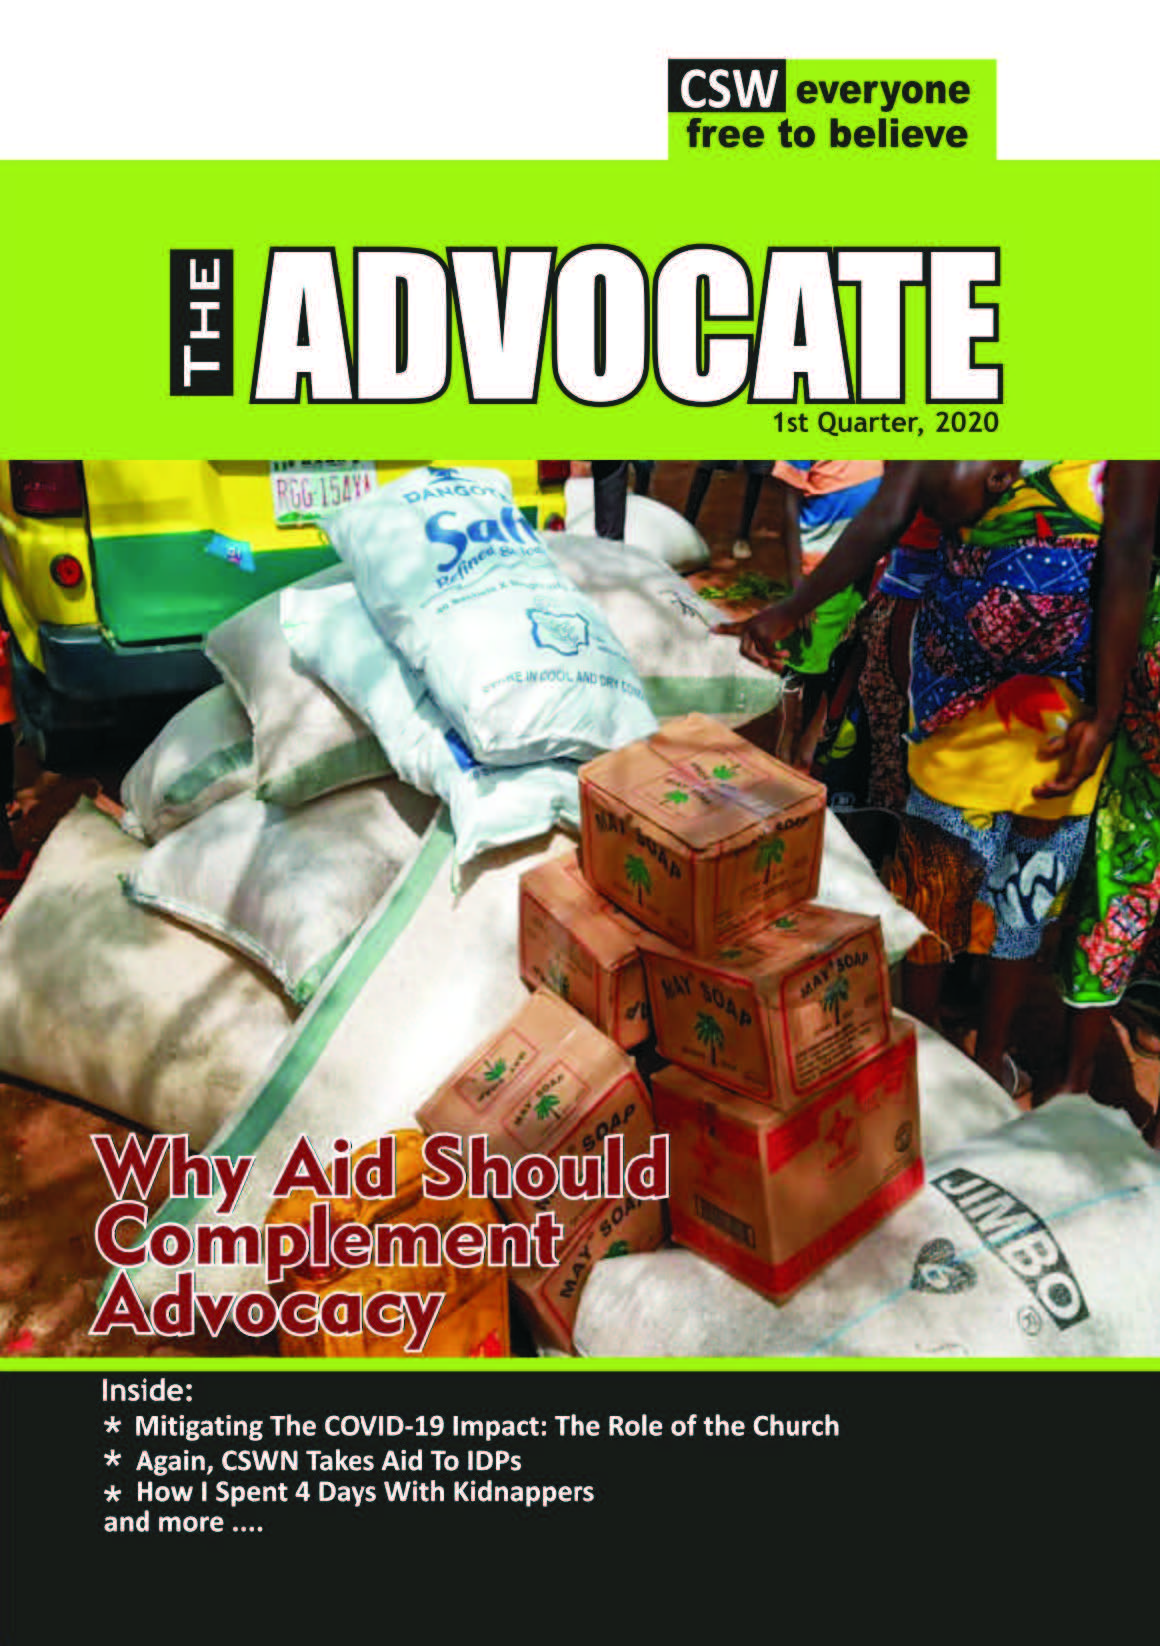 The Advocate (Q1-2020): Why Aid Should Complement Advocacy